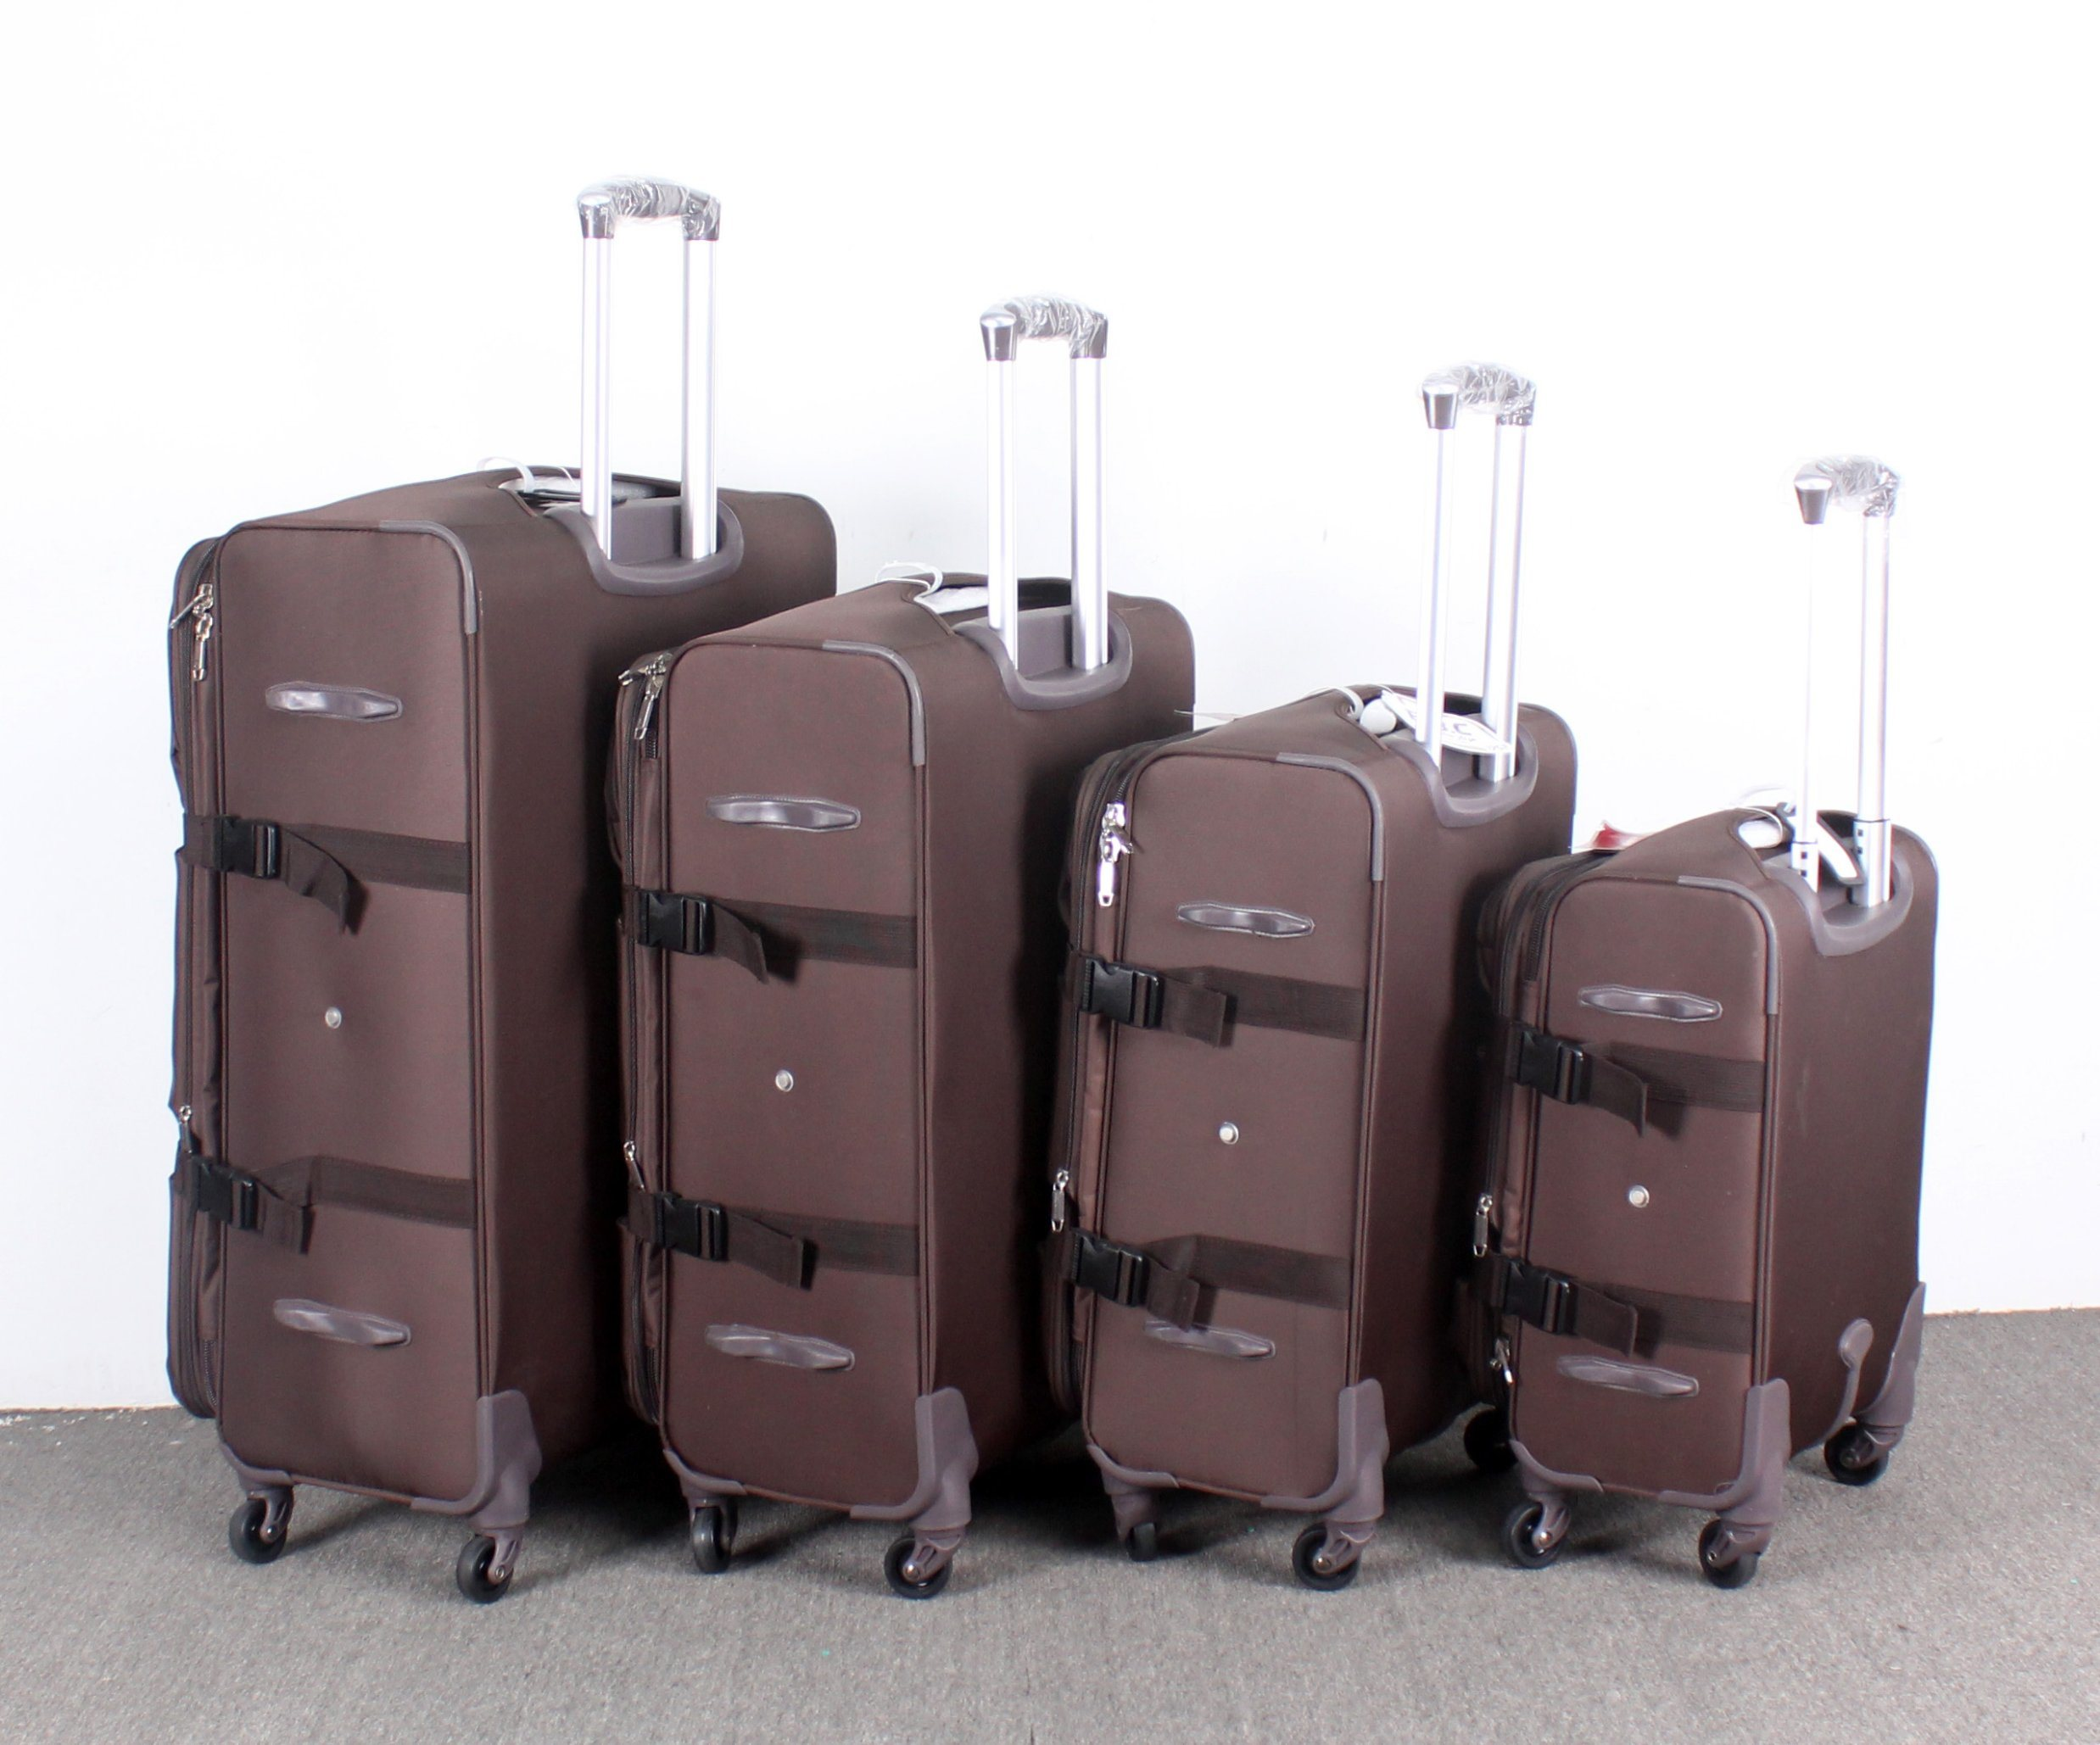 Suitcase of 4piece Per Set for Traveling